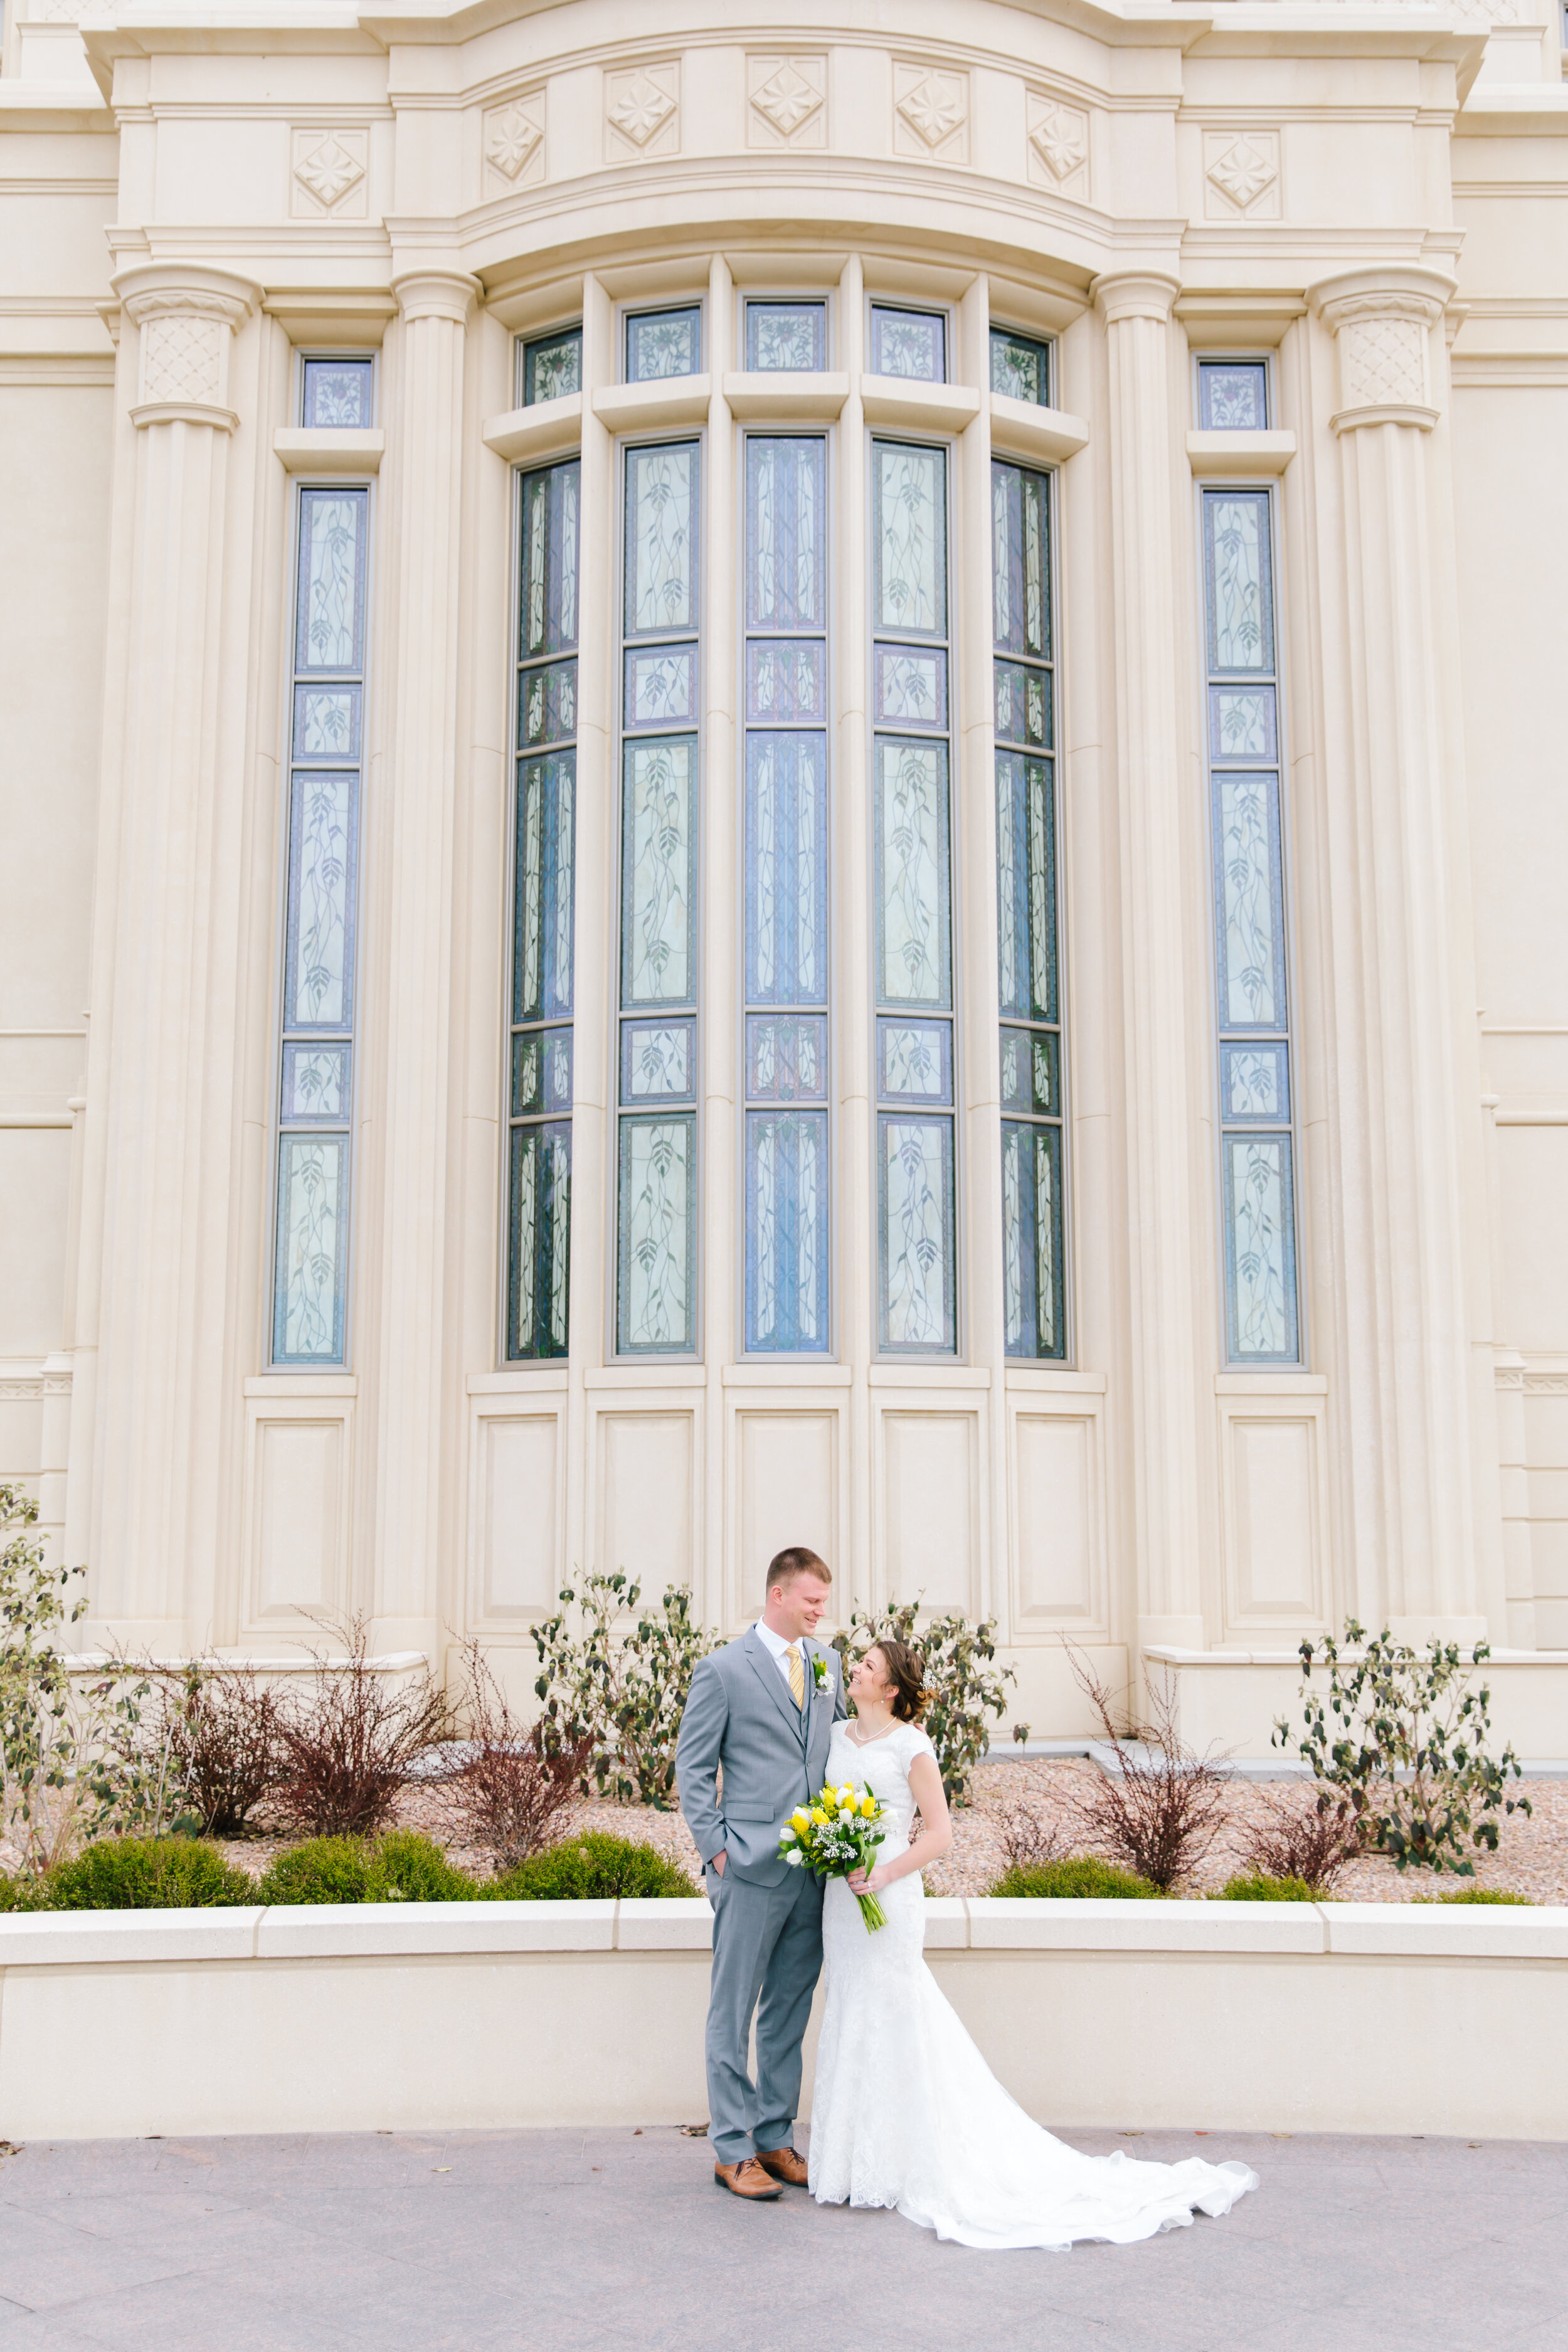 payson temple lds temple marriages blue beautiful stained glass windows payson temple pictures lds temples happy couple utah couple mormon couple marriage is what brings us together today the church of Jesus Christ of latter day saints temple marriage payson #eternalbuddies #weddingsession #weddinginspo #ldswedding #ldsbride #couplegoals #paysontemple #temple #profressionalphotographer #utah #love